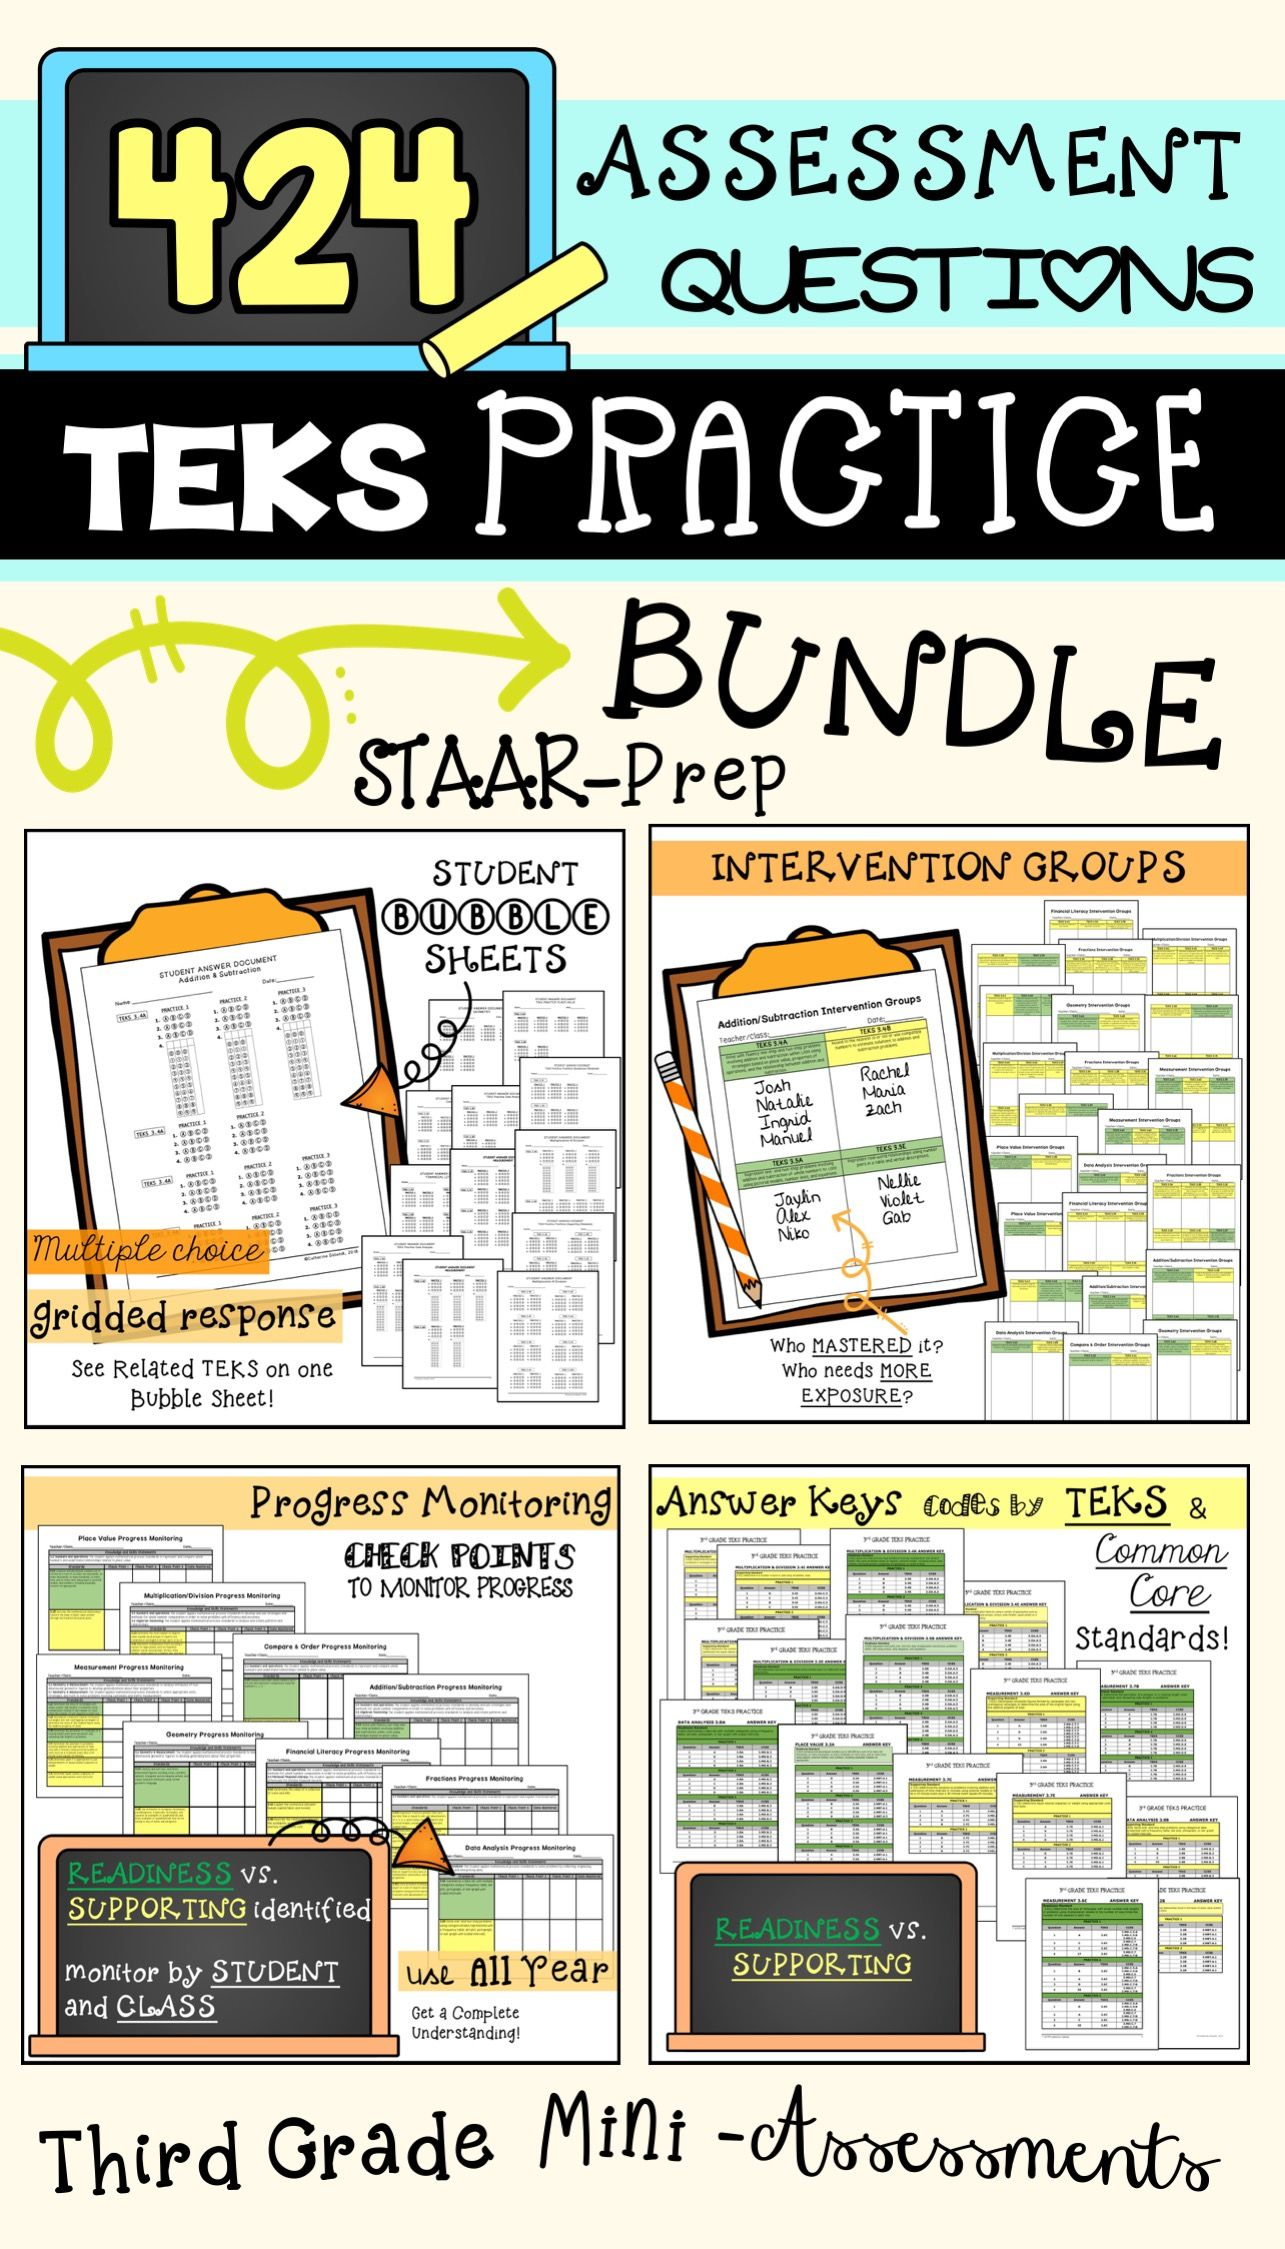 Worksheets Staar Practice Worksheets 3rd grade teks practice all year bundle 424 staar questions 106 worksheets